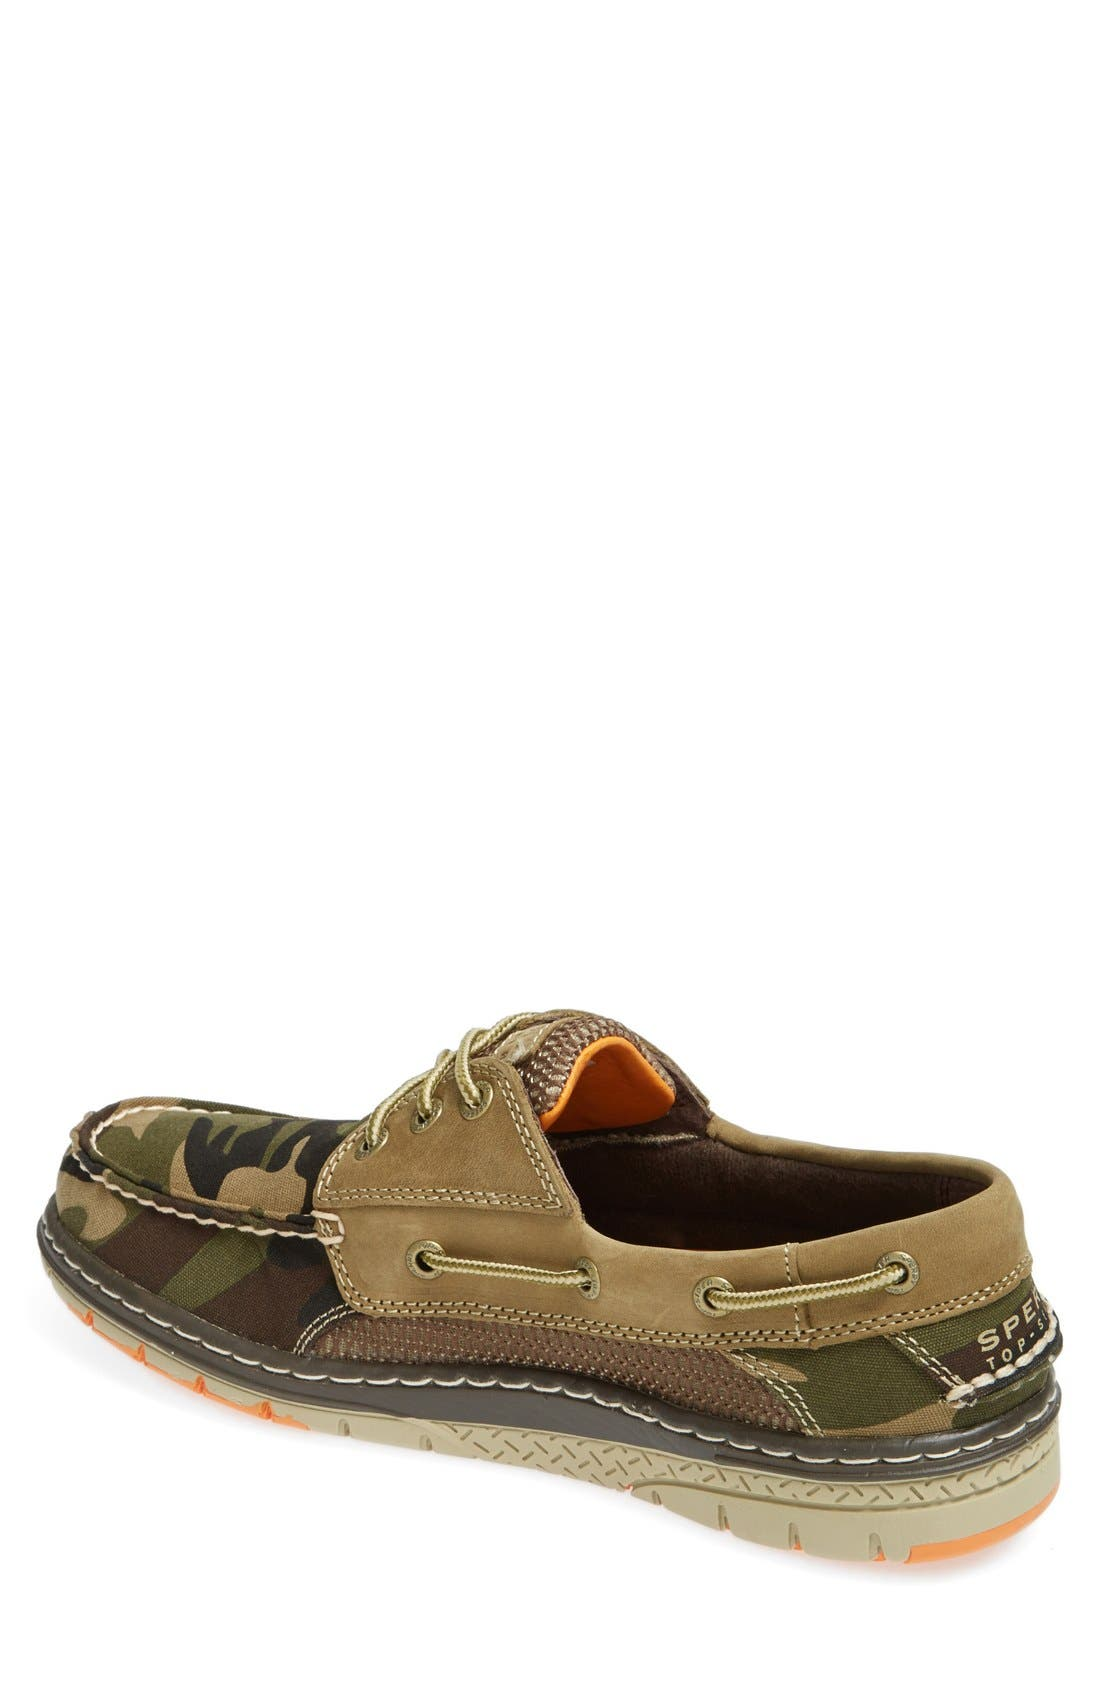 'Billfish Ultralite' Boat Shoe,                             Alternate thumbnail 76, color,